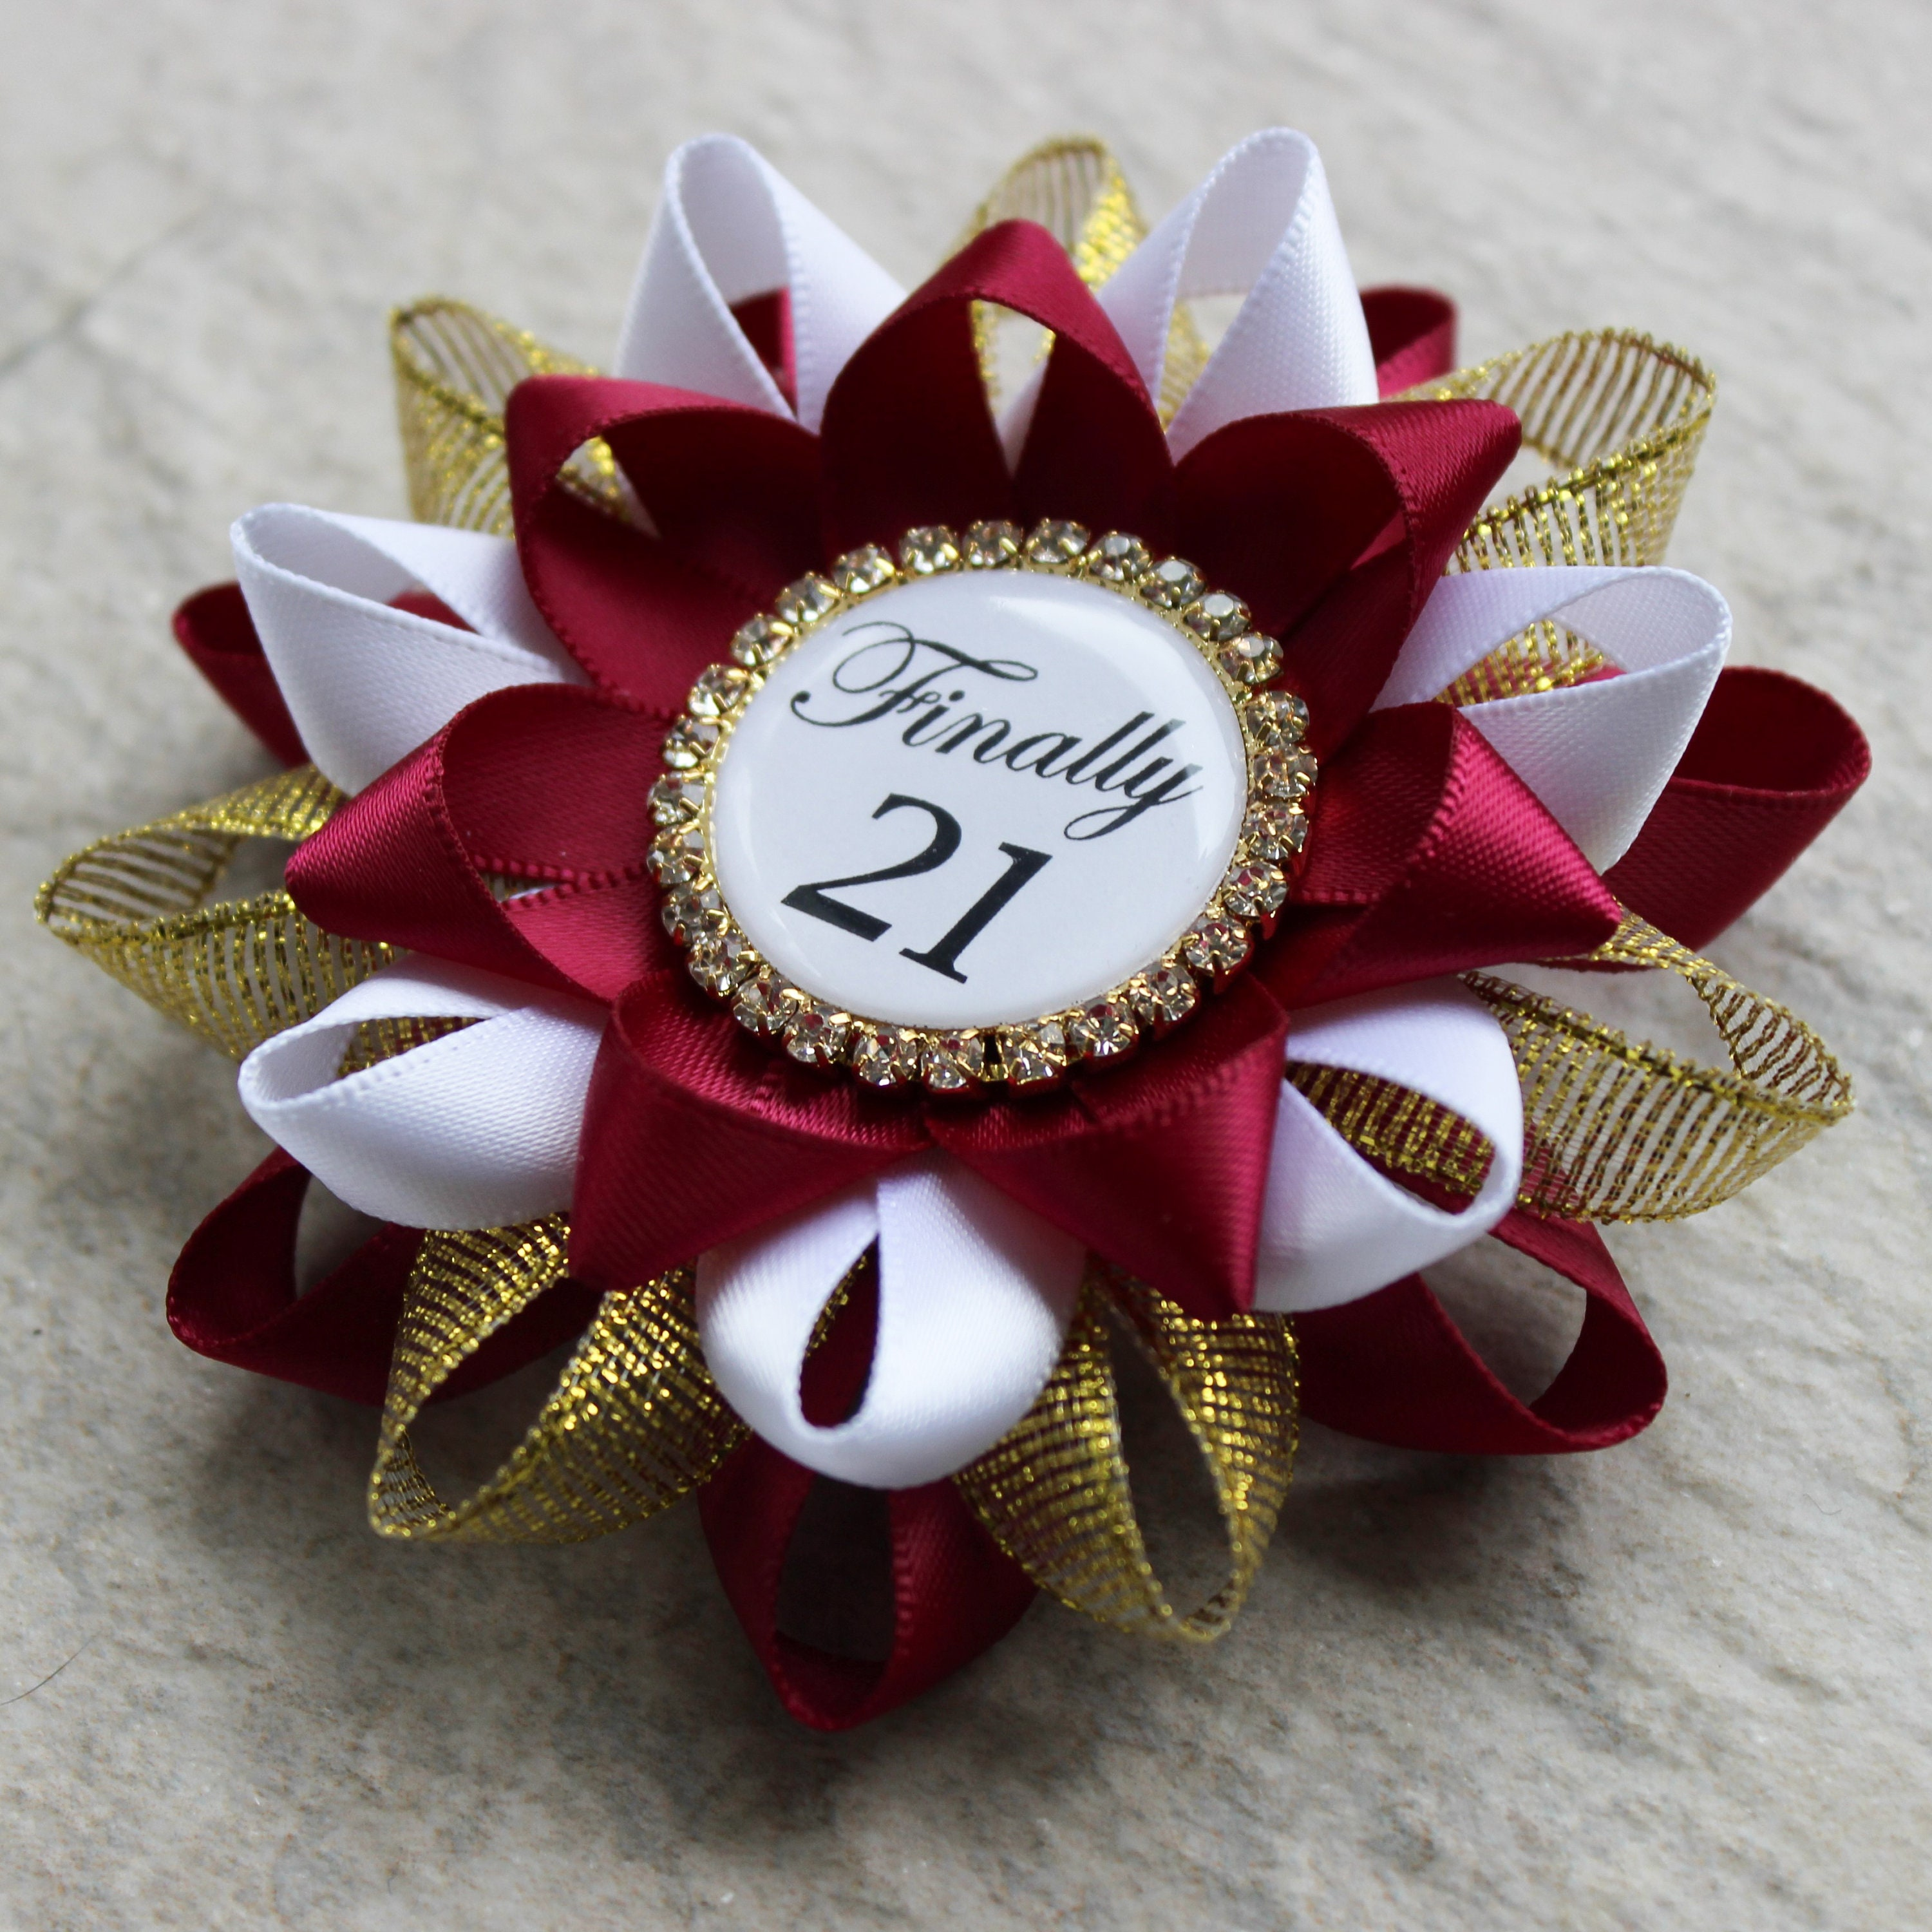 gallery photo gallery photo gallery photo ... & Finally 21 21st Birthday Decorations 21st Birthday Gift for Her ...